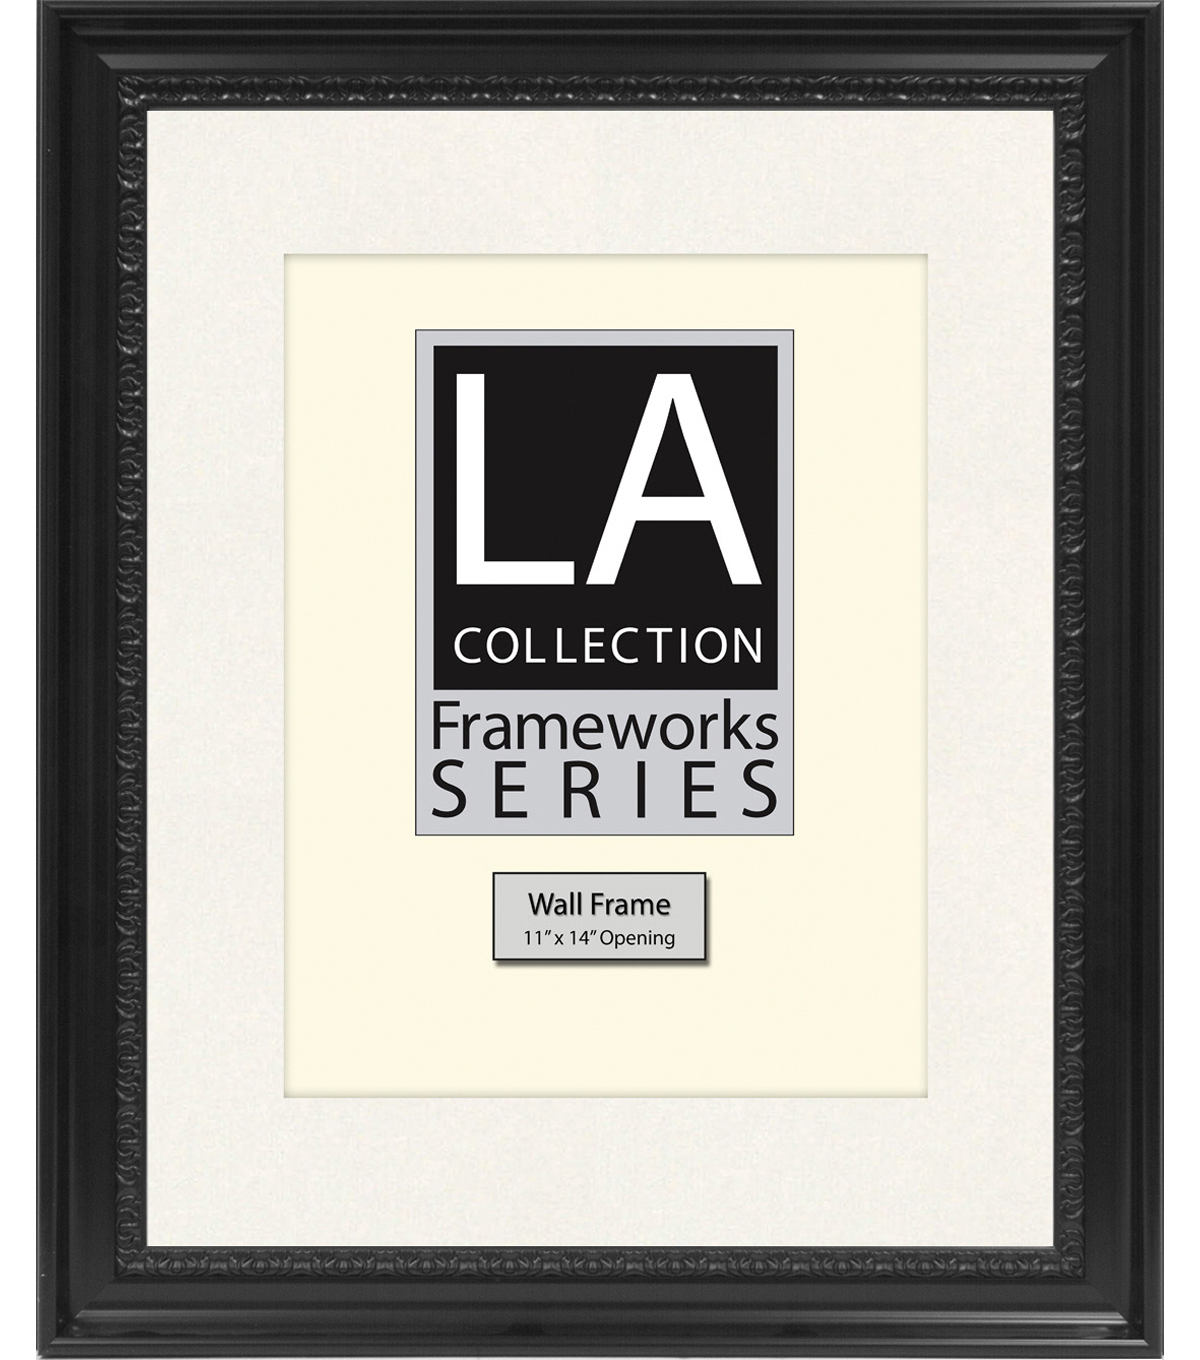 Bodacious La Collection Frameworks Series Wall Frame La Collection Wall Frame Joann 16 X 20 Frame Black 16x20 Framed Mirror dpreview 16 X 20 Frame